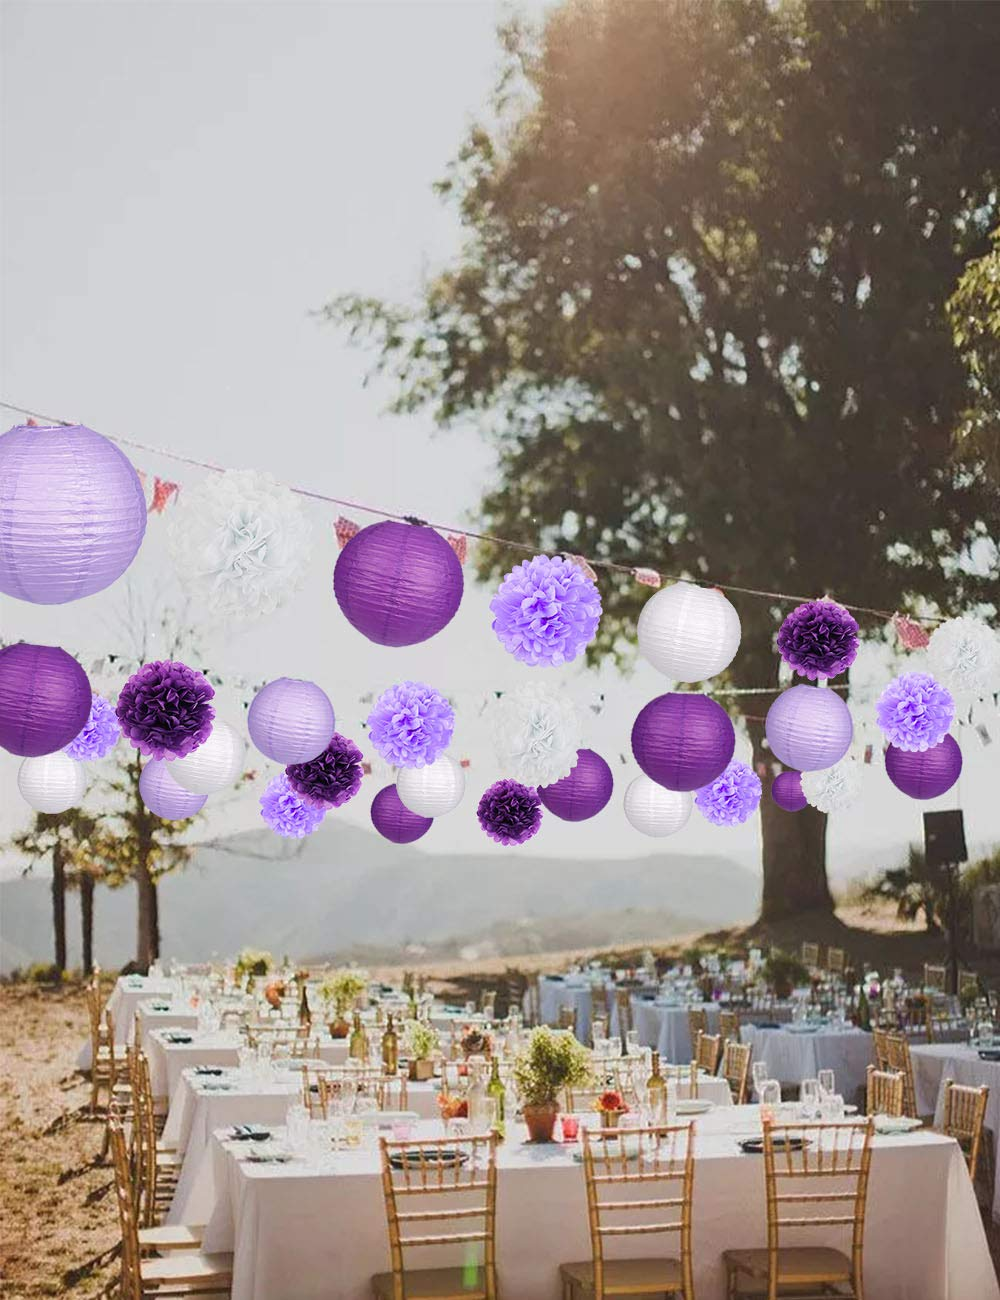 15Pcs Party Pack Paper Lanterns and Pom Pom Balls Hanging Decoration for Halloween Wedding Birthday Baby Shower-Black//Red//White